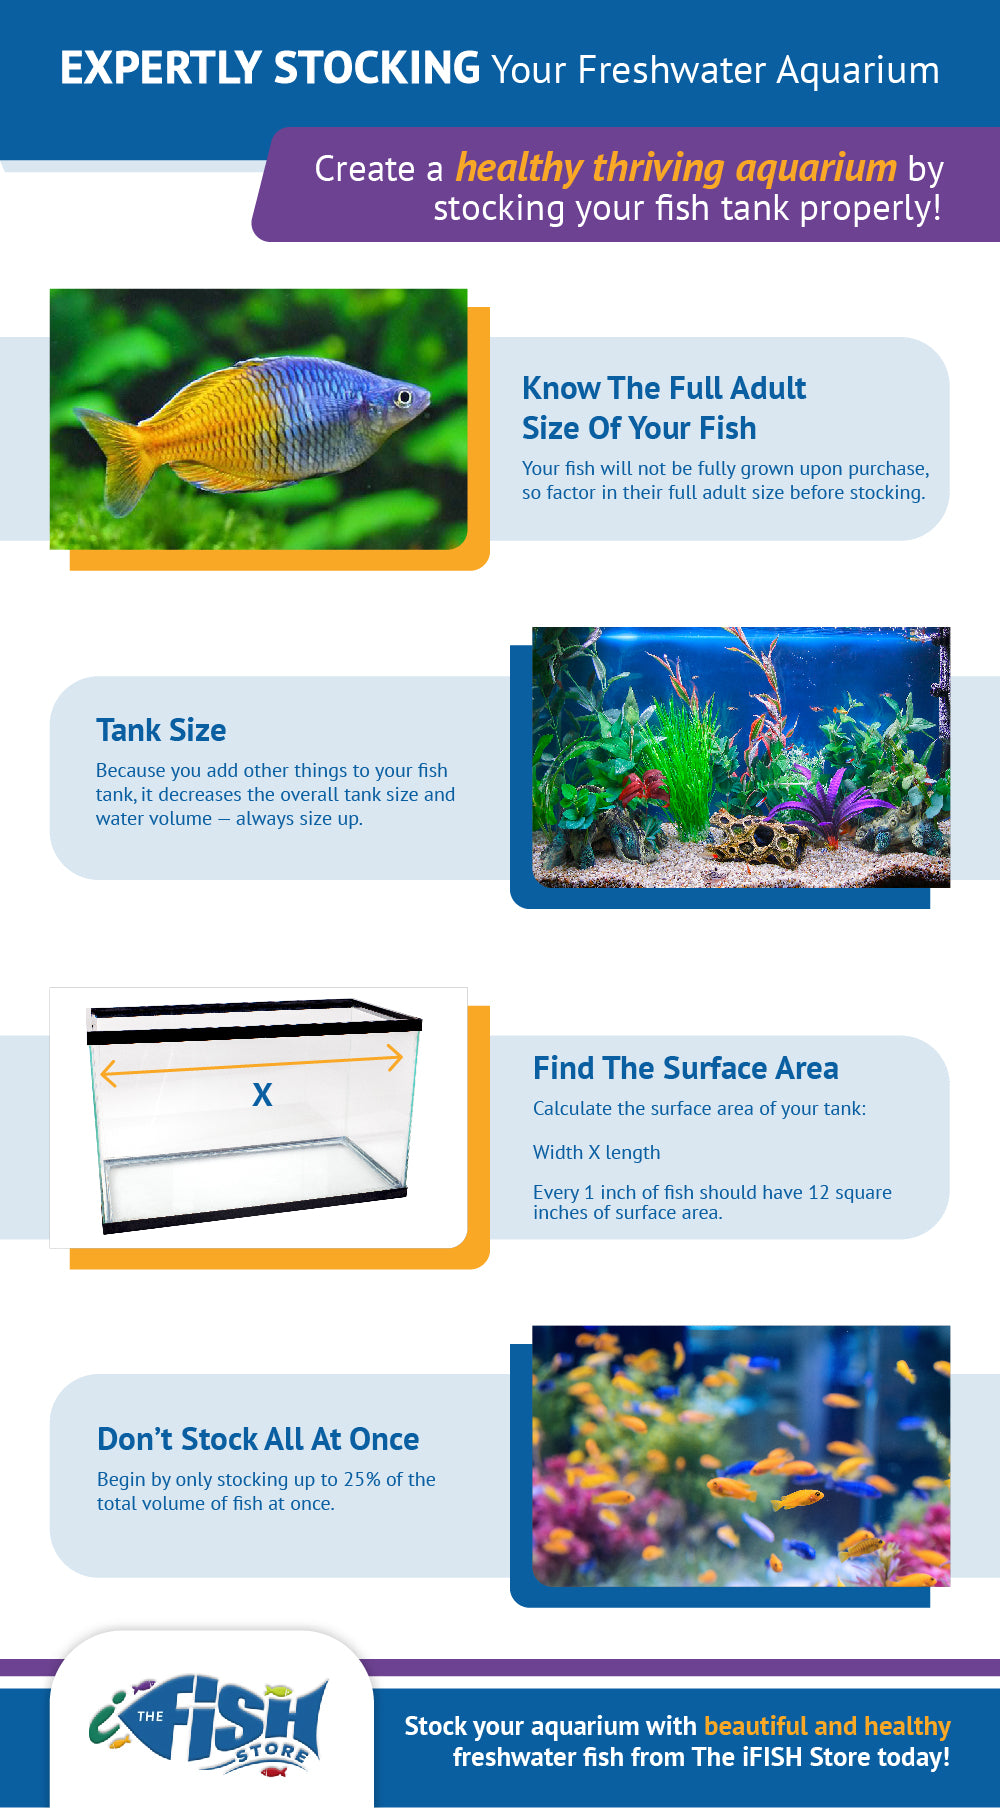 infographic about stocking a fish tank properly